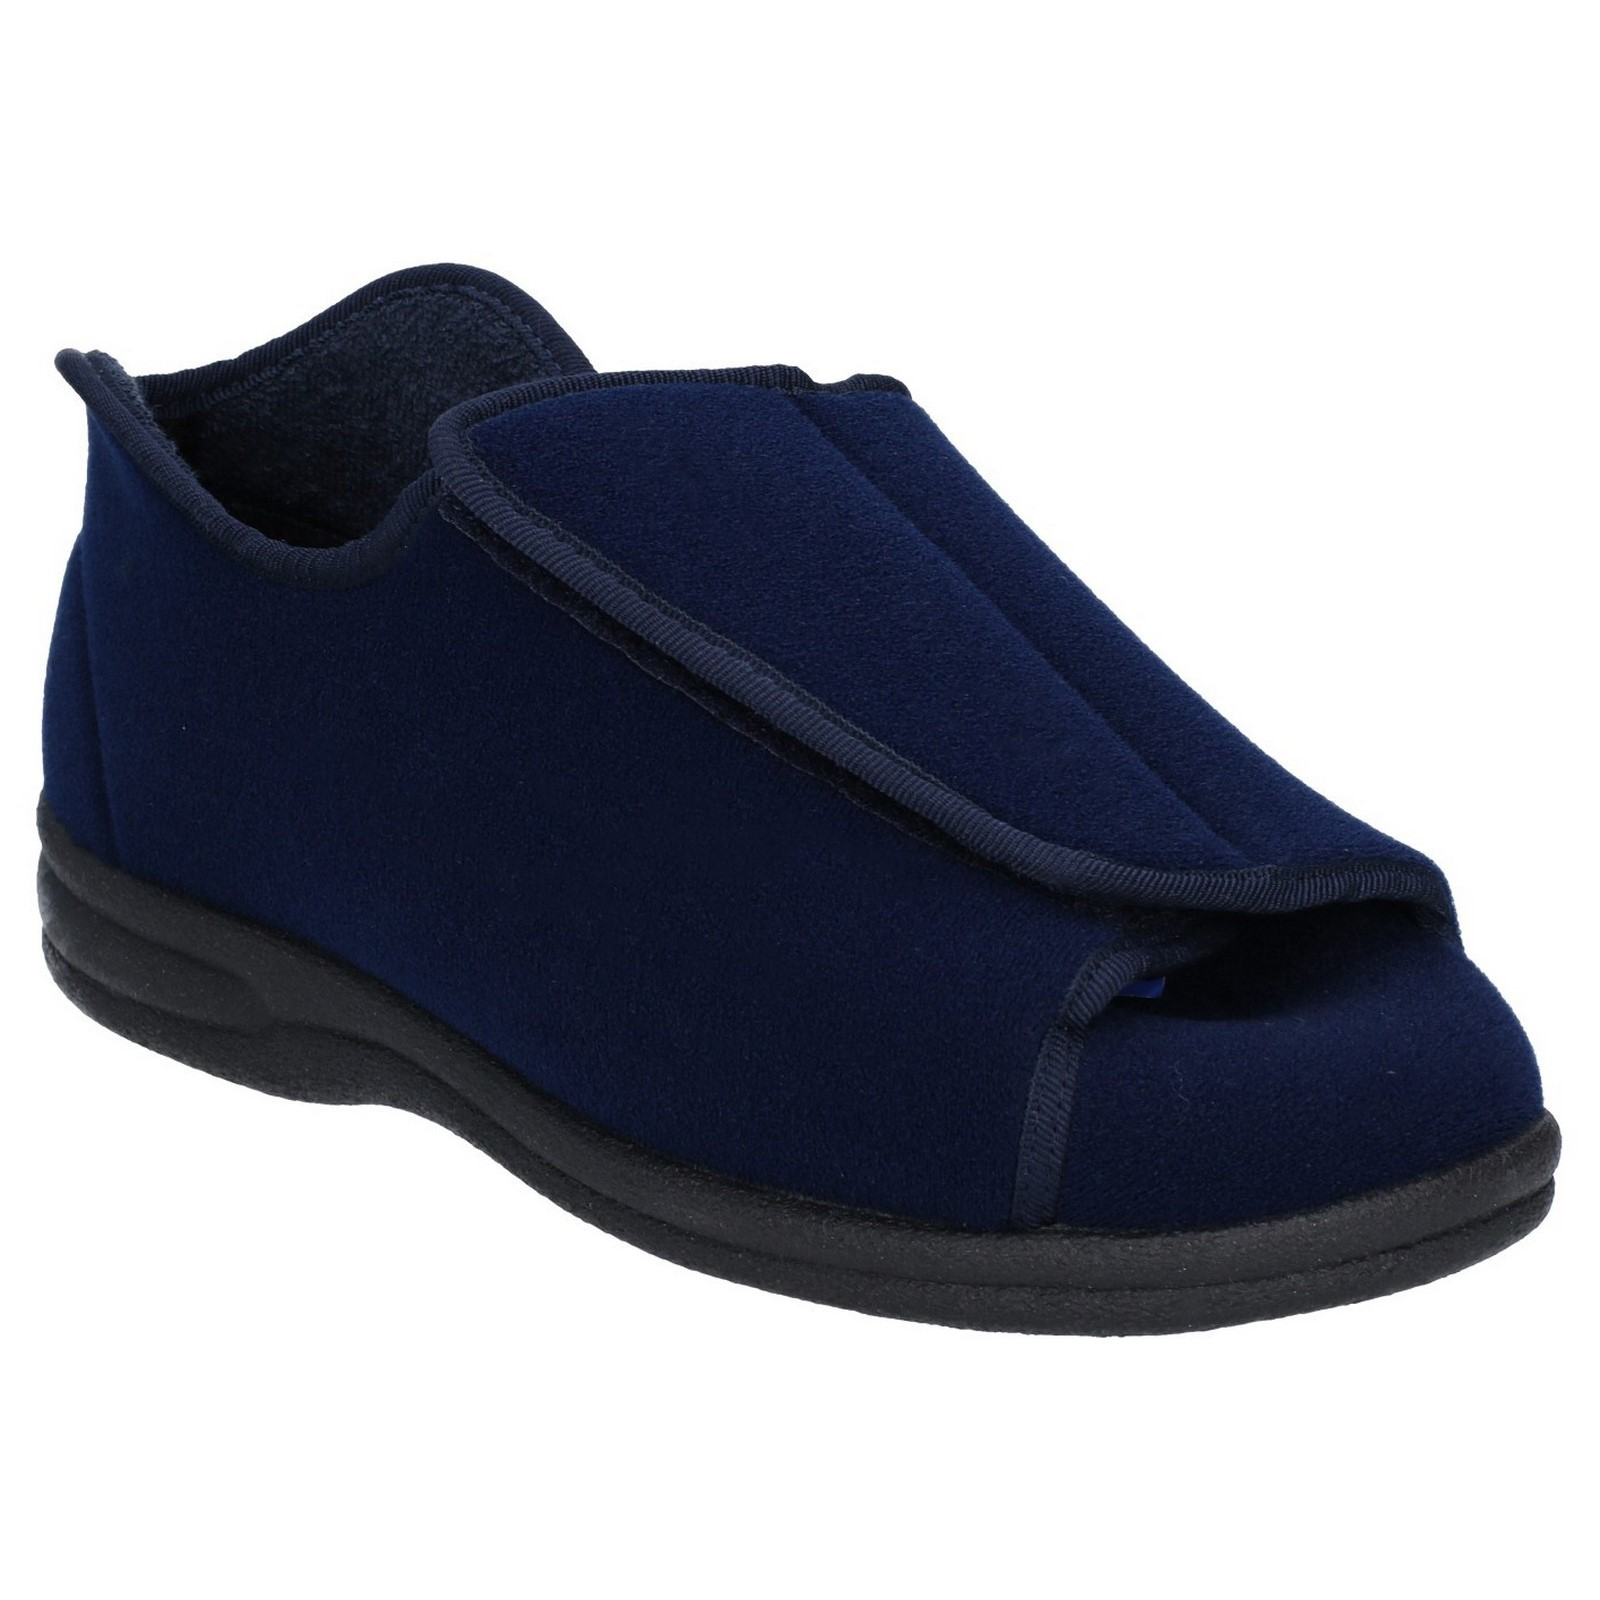 e8278aac93d0 Mens Navy Group 5 Slippers Velcro Size 44. for sale online